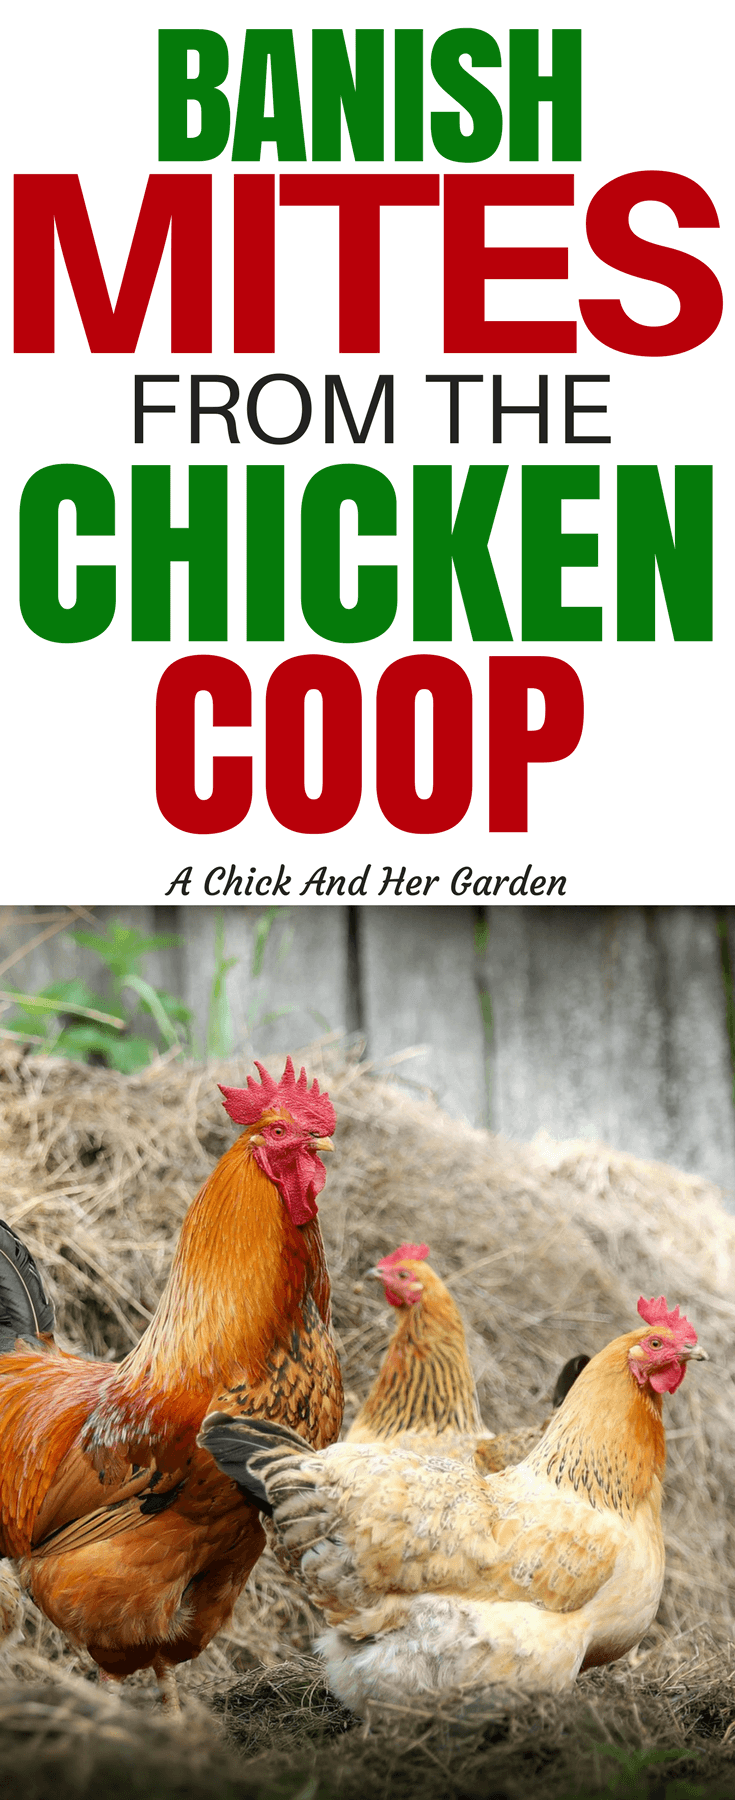 When you find mites in the chicken coop it's almost enough to want to give up chickens! Let's face it, they make your skin crawl! But don't give up yet. This is how you treat your chicken coop for mites, and keep them away! #mitesinthechickencoop #chickens #backyardchickens #raisingchickens #homesteading #achickandhergarden